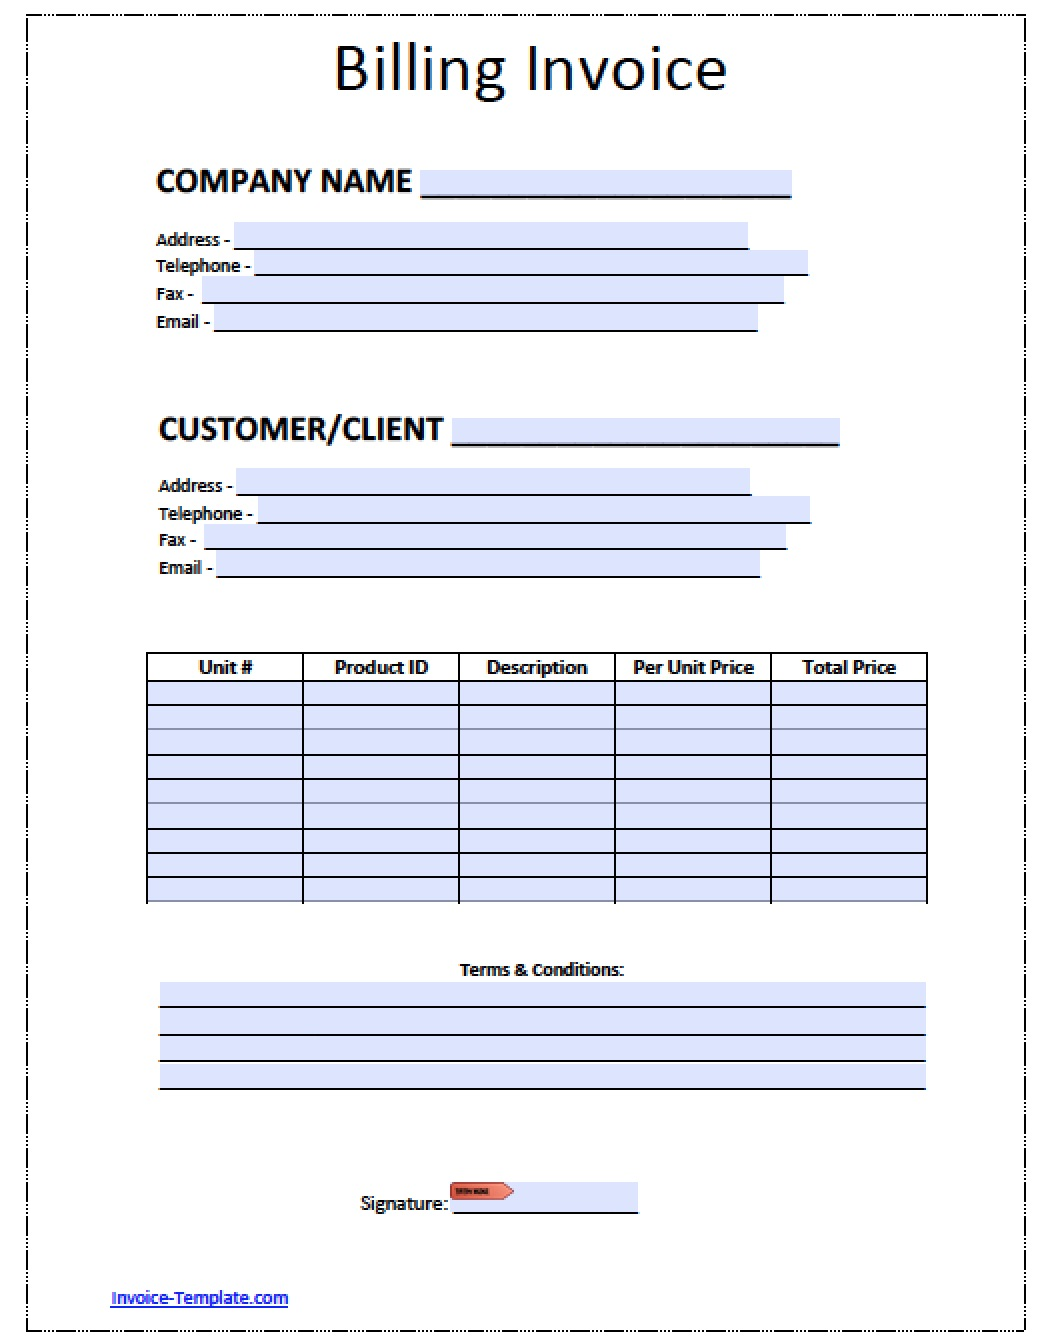 Billing Invoice Template Word Pdf  Membership Invoice Template